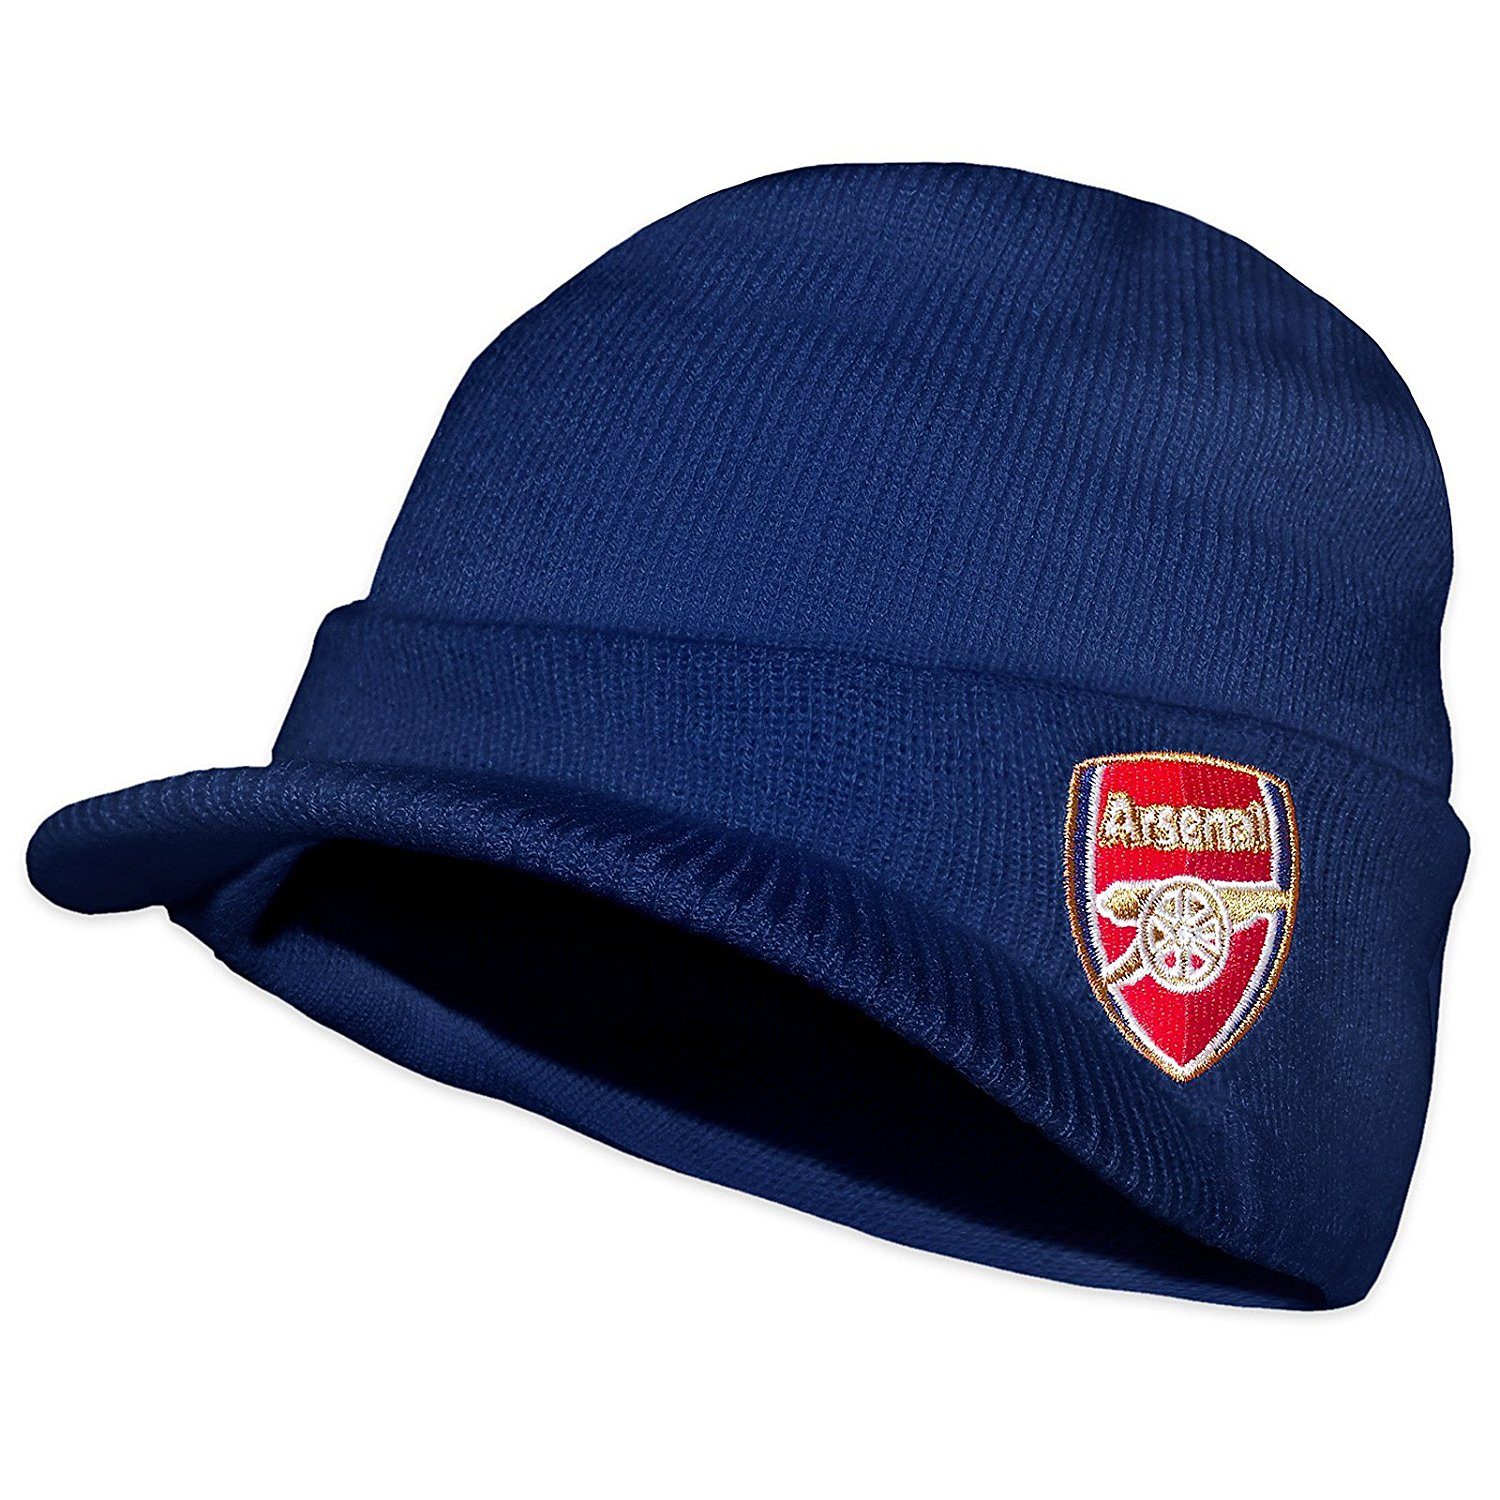 e29f5a28124 Get Quotations · Arsenal FC Official Soccer Gift Adults Knitted Peaked  Beanie Hat Navy